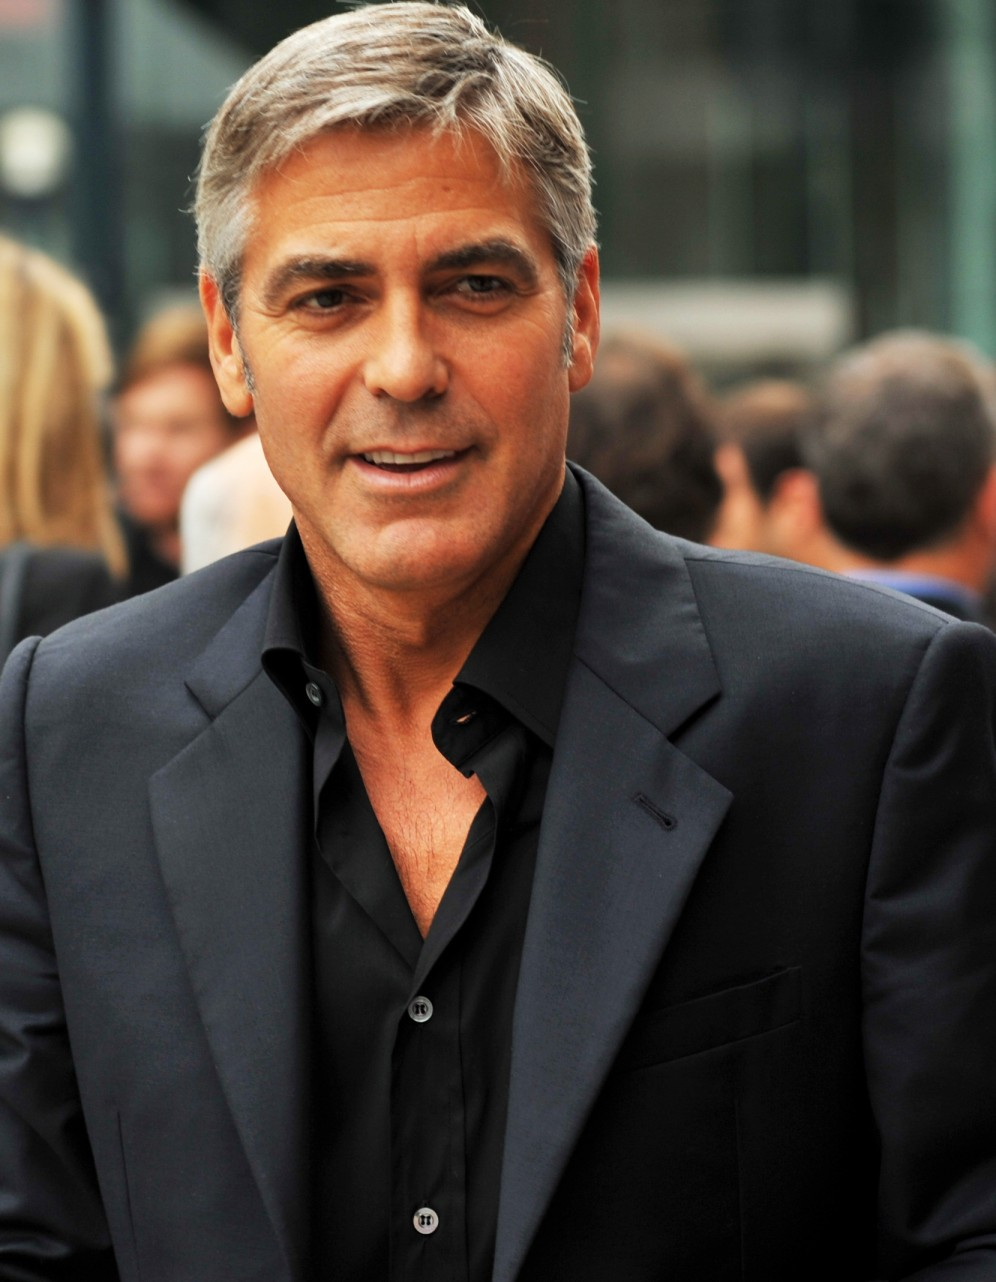 George_Clooney-4_The_Men_Who_Stare_at_Goats_TIFF09_(cropped) (1)